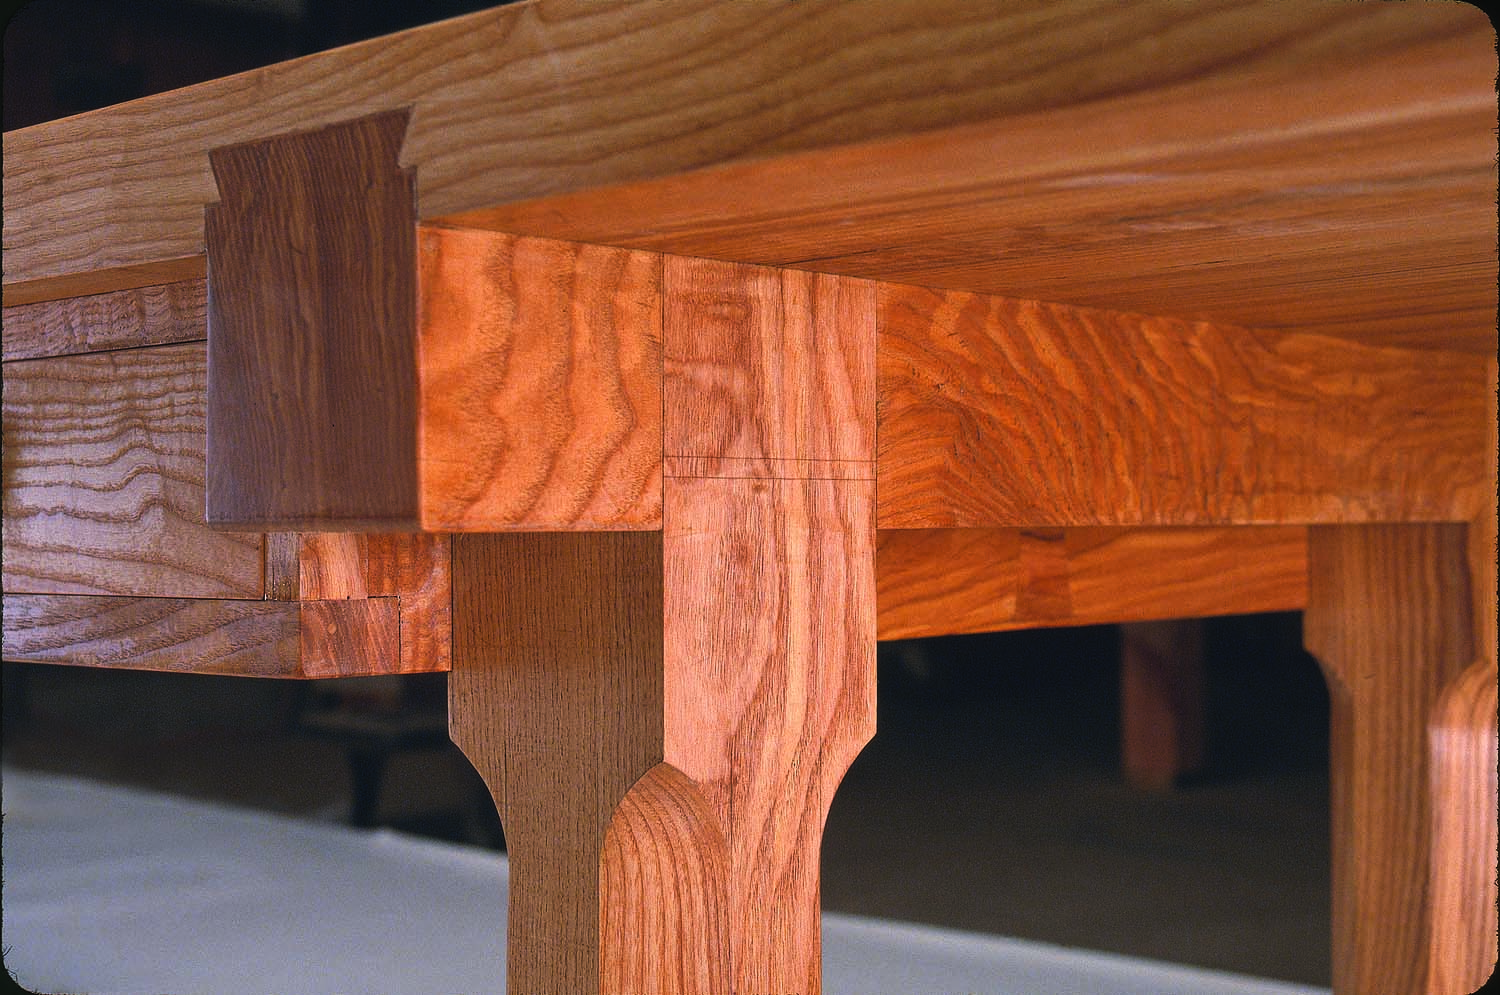 Magobei S Dining Table Part 1 Popular Woodworking Magazine